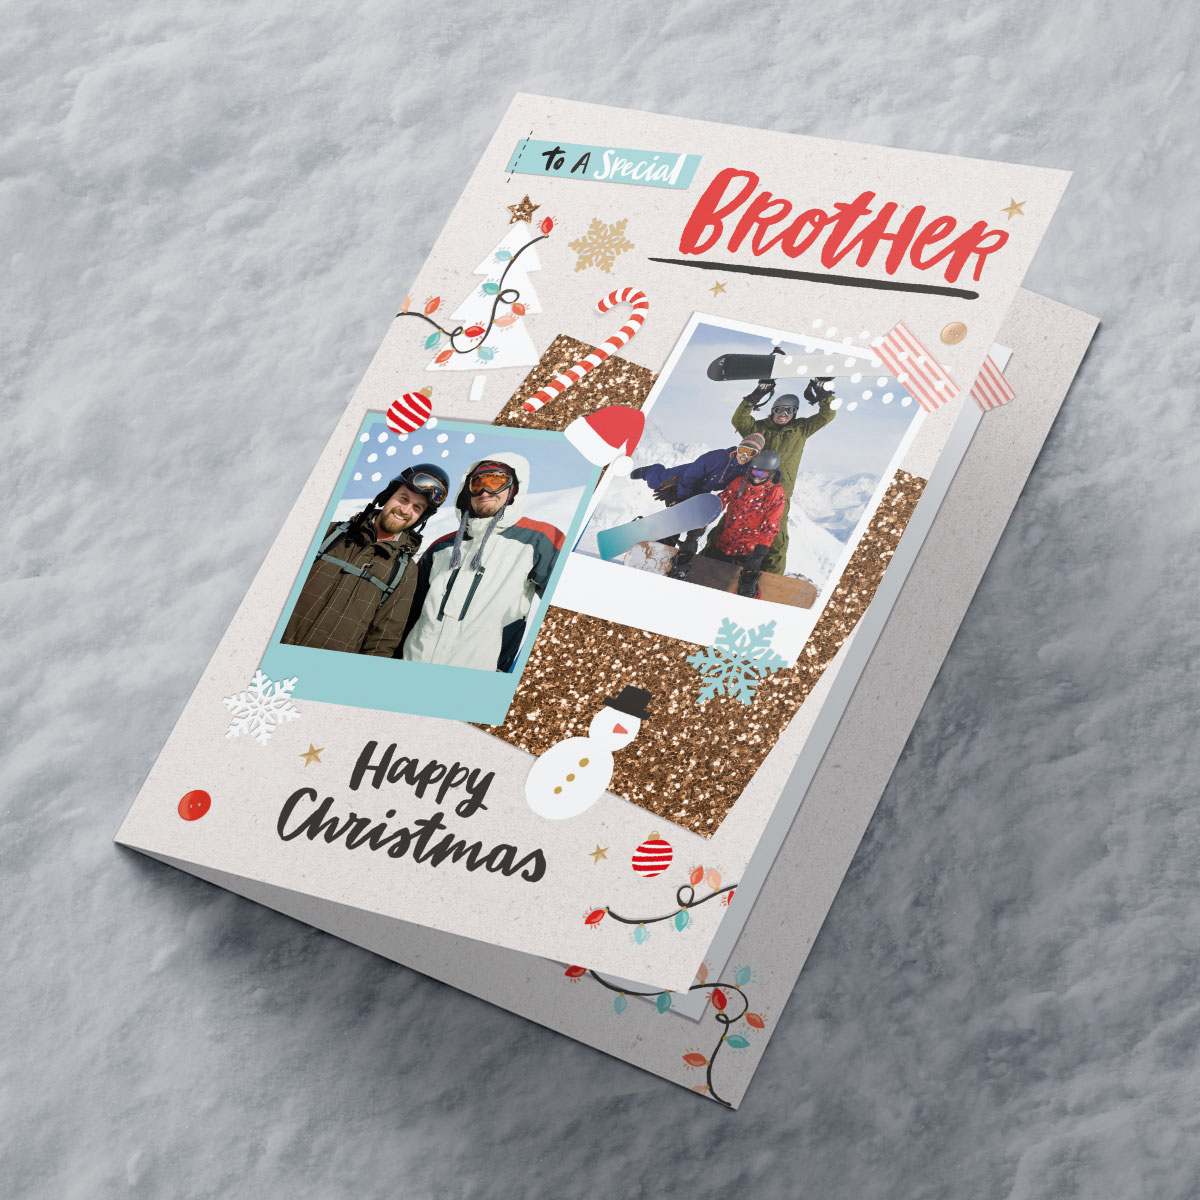 Multi Photo Upload Christmas Card - Special Brother